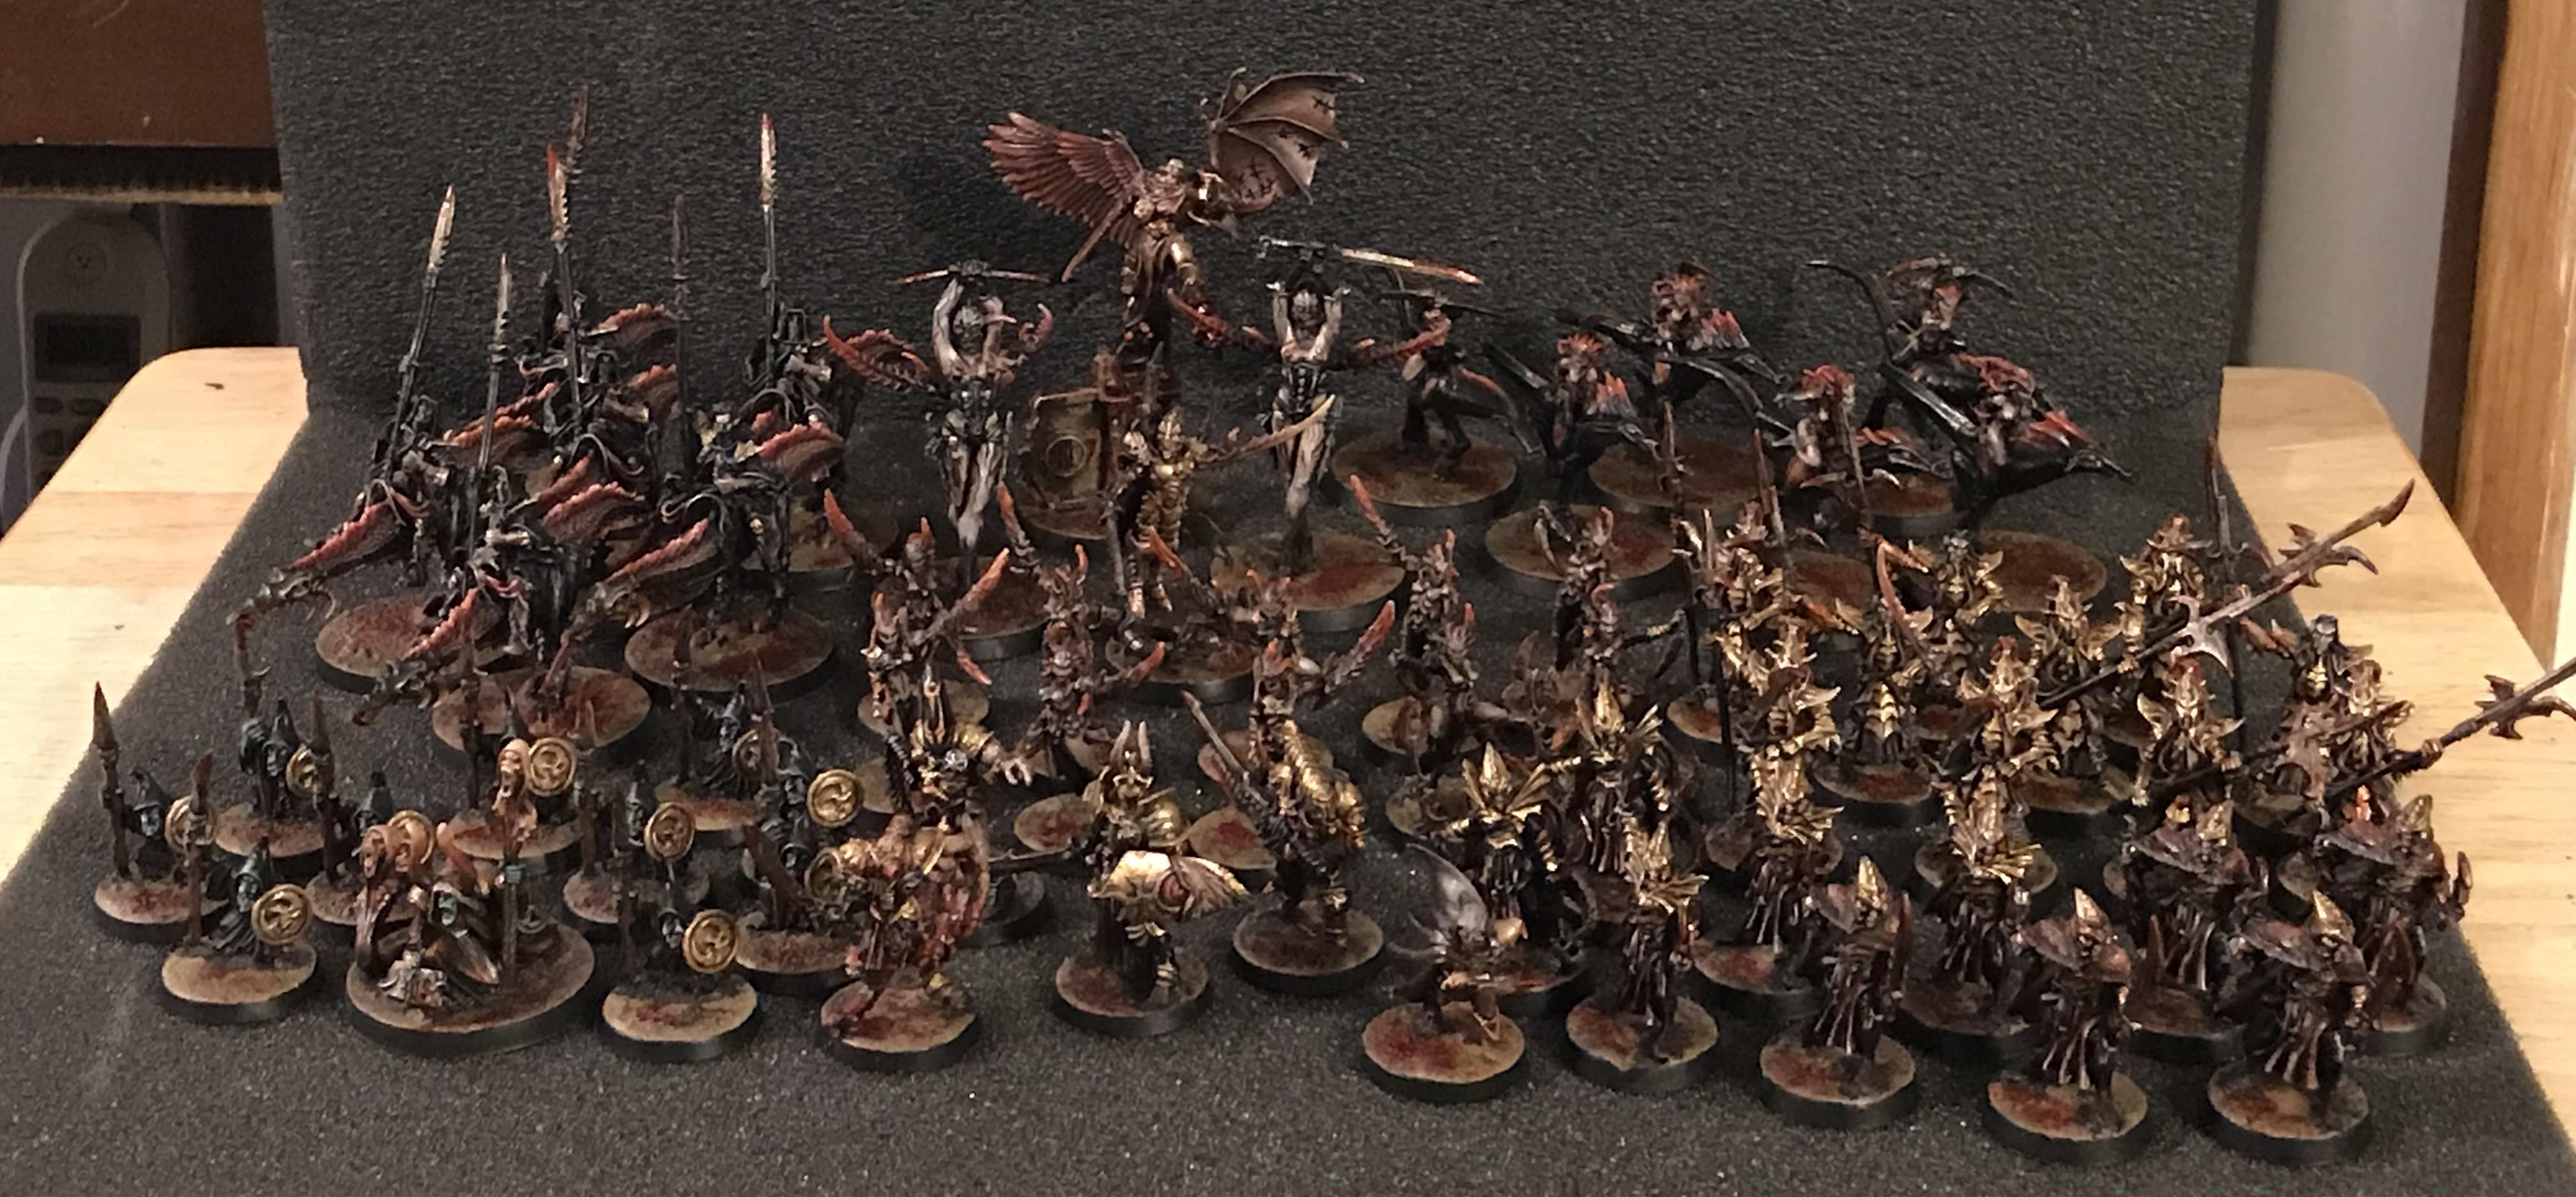 Aef, Aelves, Age, Agony, Aos28, Army, Battle, Chaos, Cosmic, Cult, Cultists, Daemonic, Daemons, Dark, Darkness, Decadence, Druchii, Eldritch, Elves, Excess, Gold, Golden, Horrors, Misery, Mordheim, Of, Pain, Pleasure, Progress, Project, Red, Rising, Sigmar, Slaanesh, Slaves, Sun, To, Torture, Warband, Warhammer Fantasy